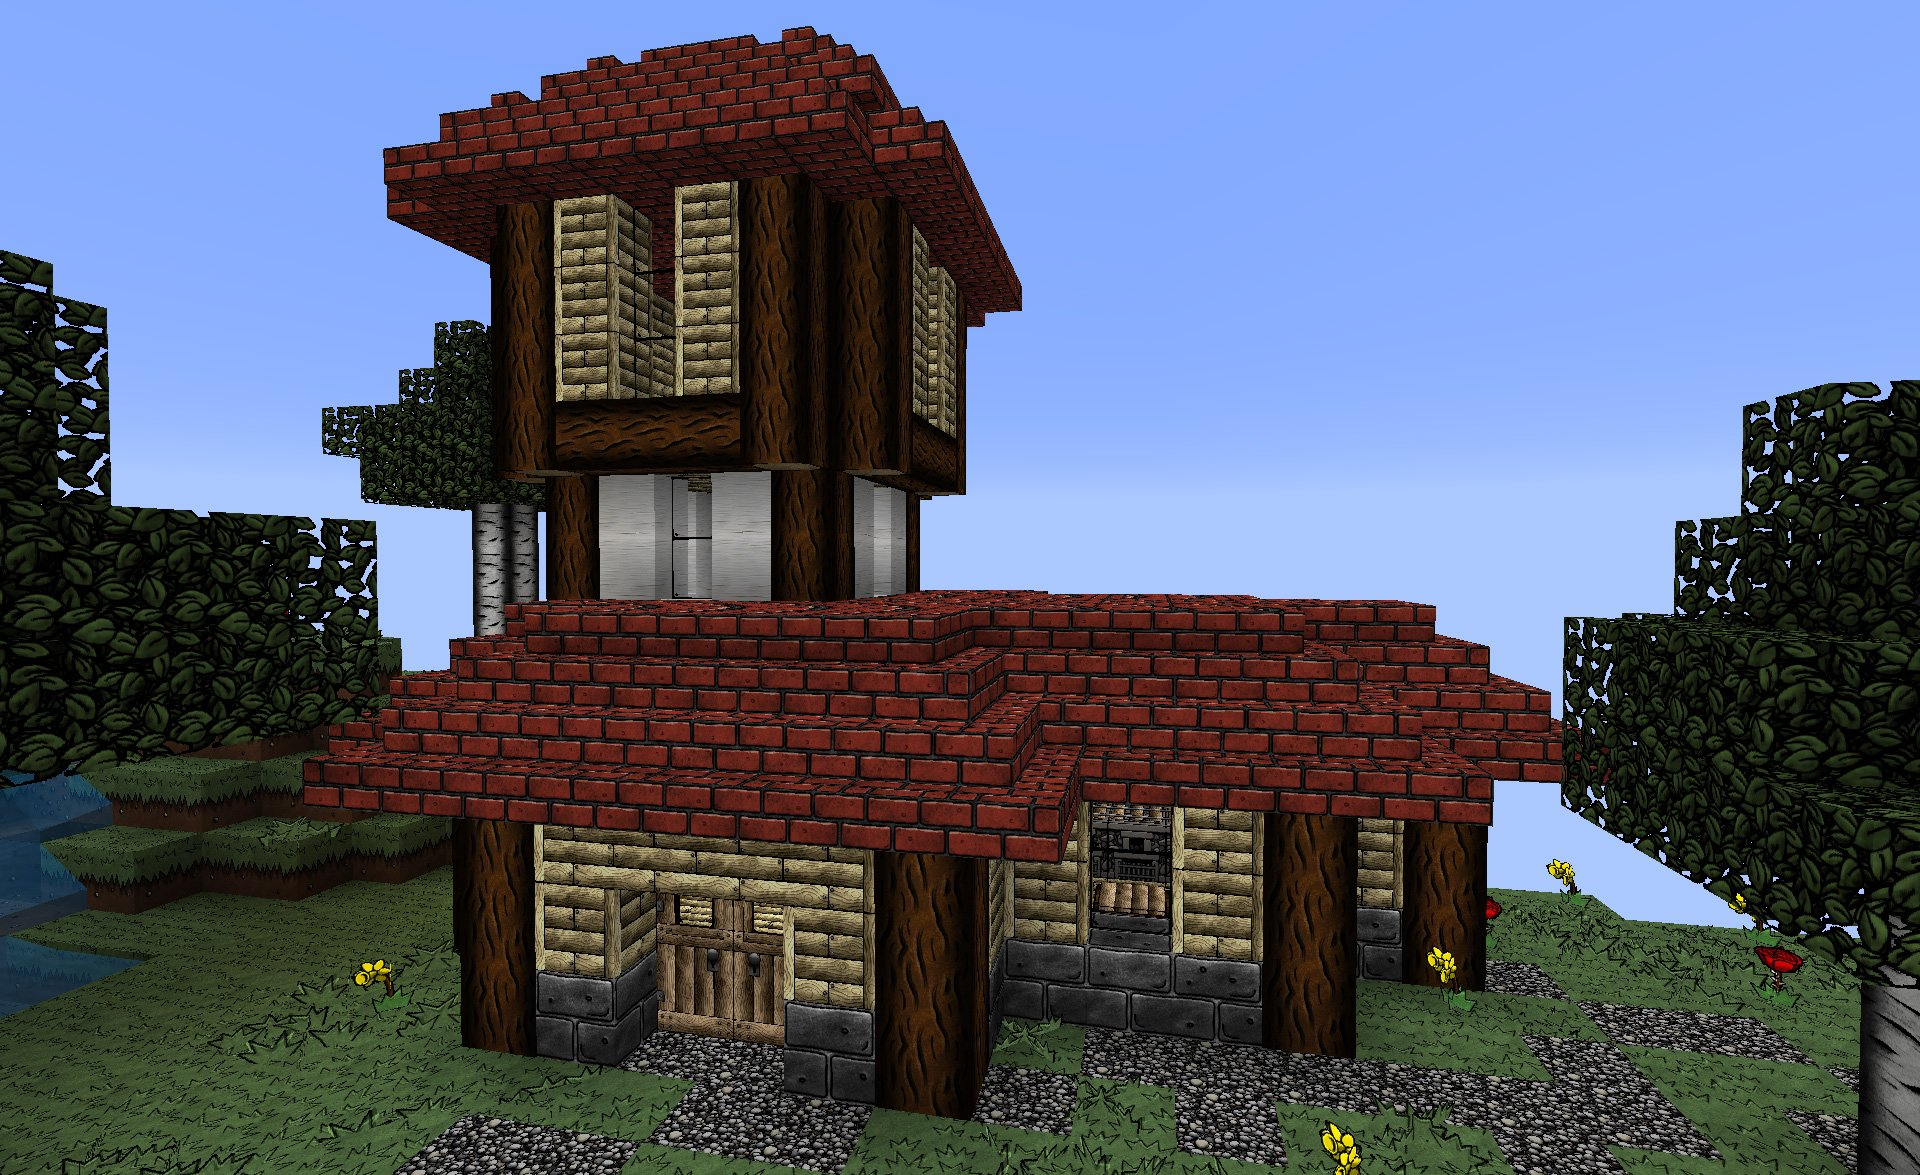 minecraft kaynecraft texture pack 1.5